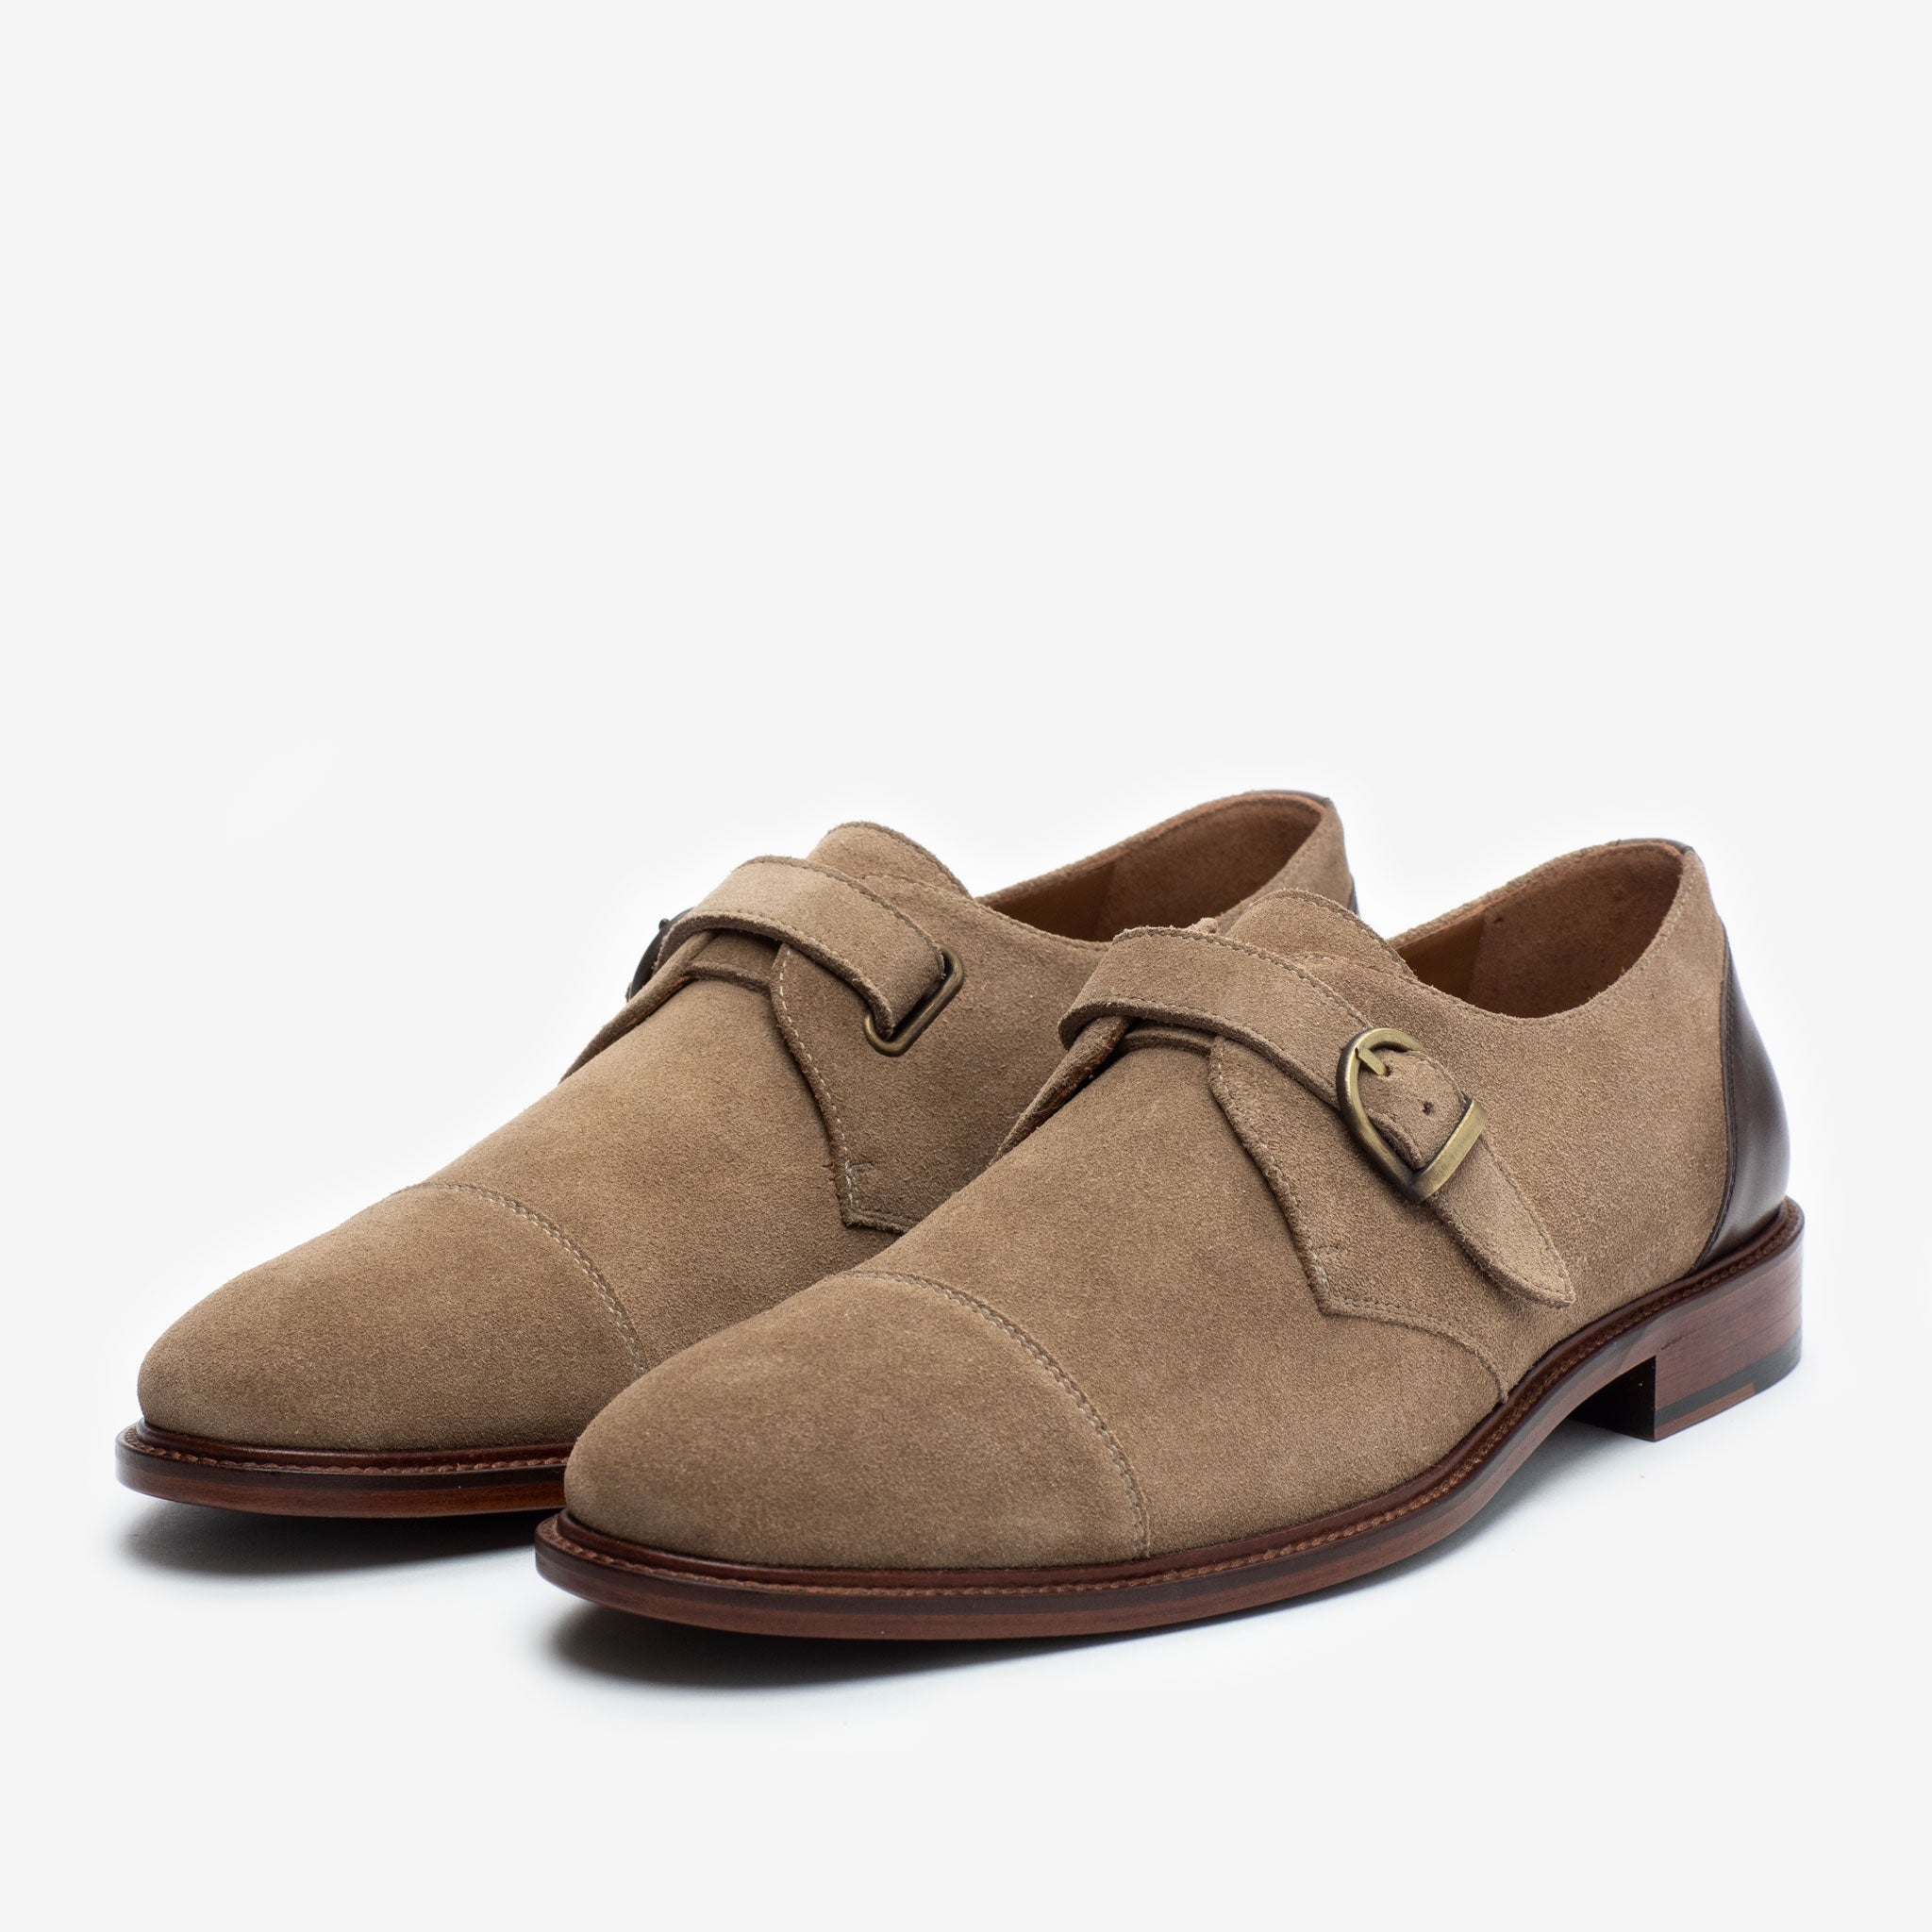 The Westminster Shoe in Beige side view